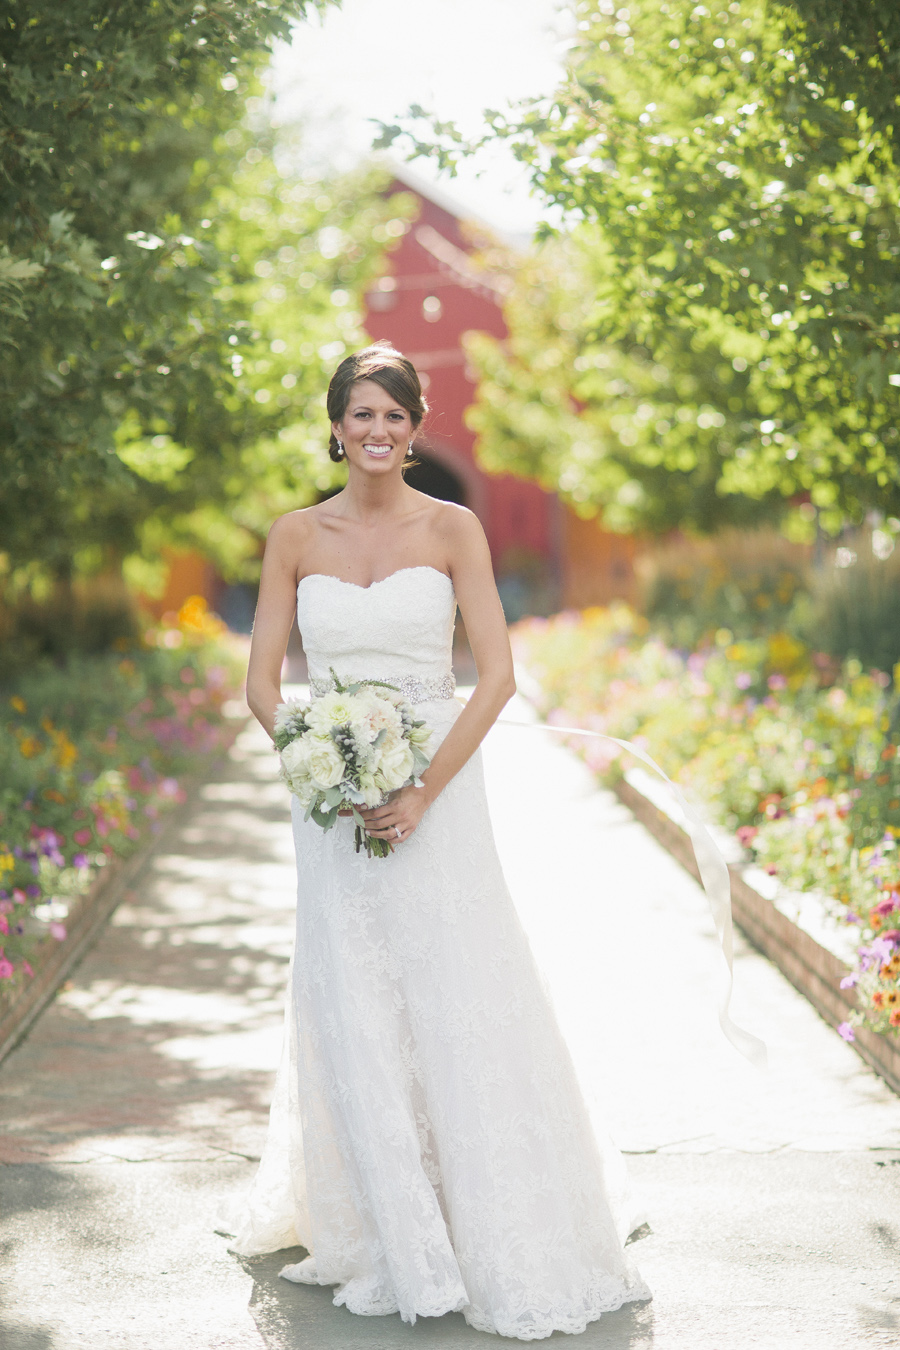 Emily_Todd_LarkspurColorado_Wedding_10.jpg